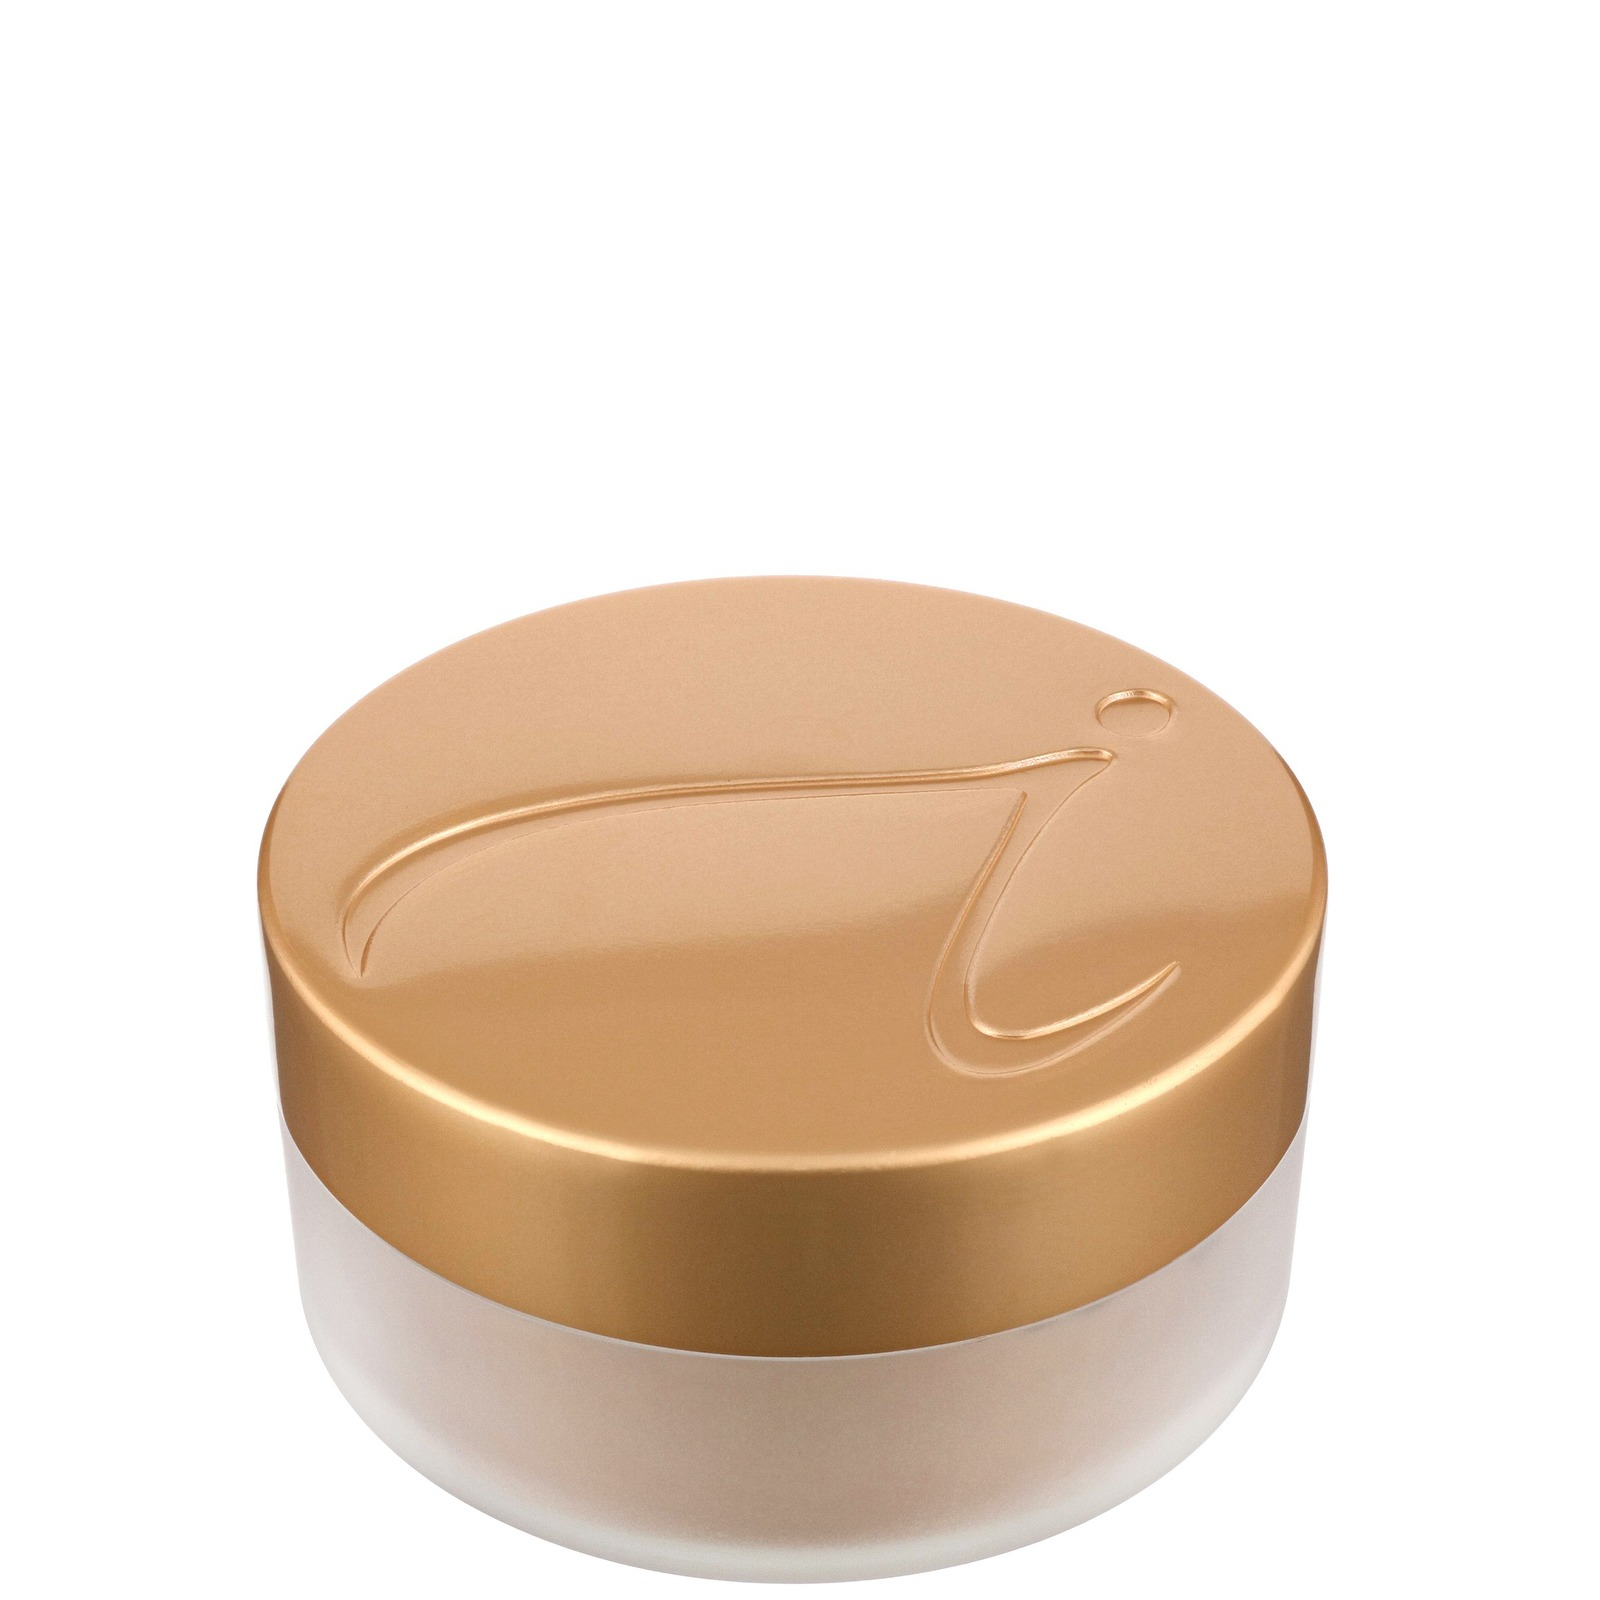 Jane Iredale Amazing Matte Loose Finishing Powder, Universal Shade